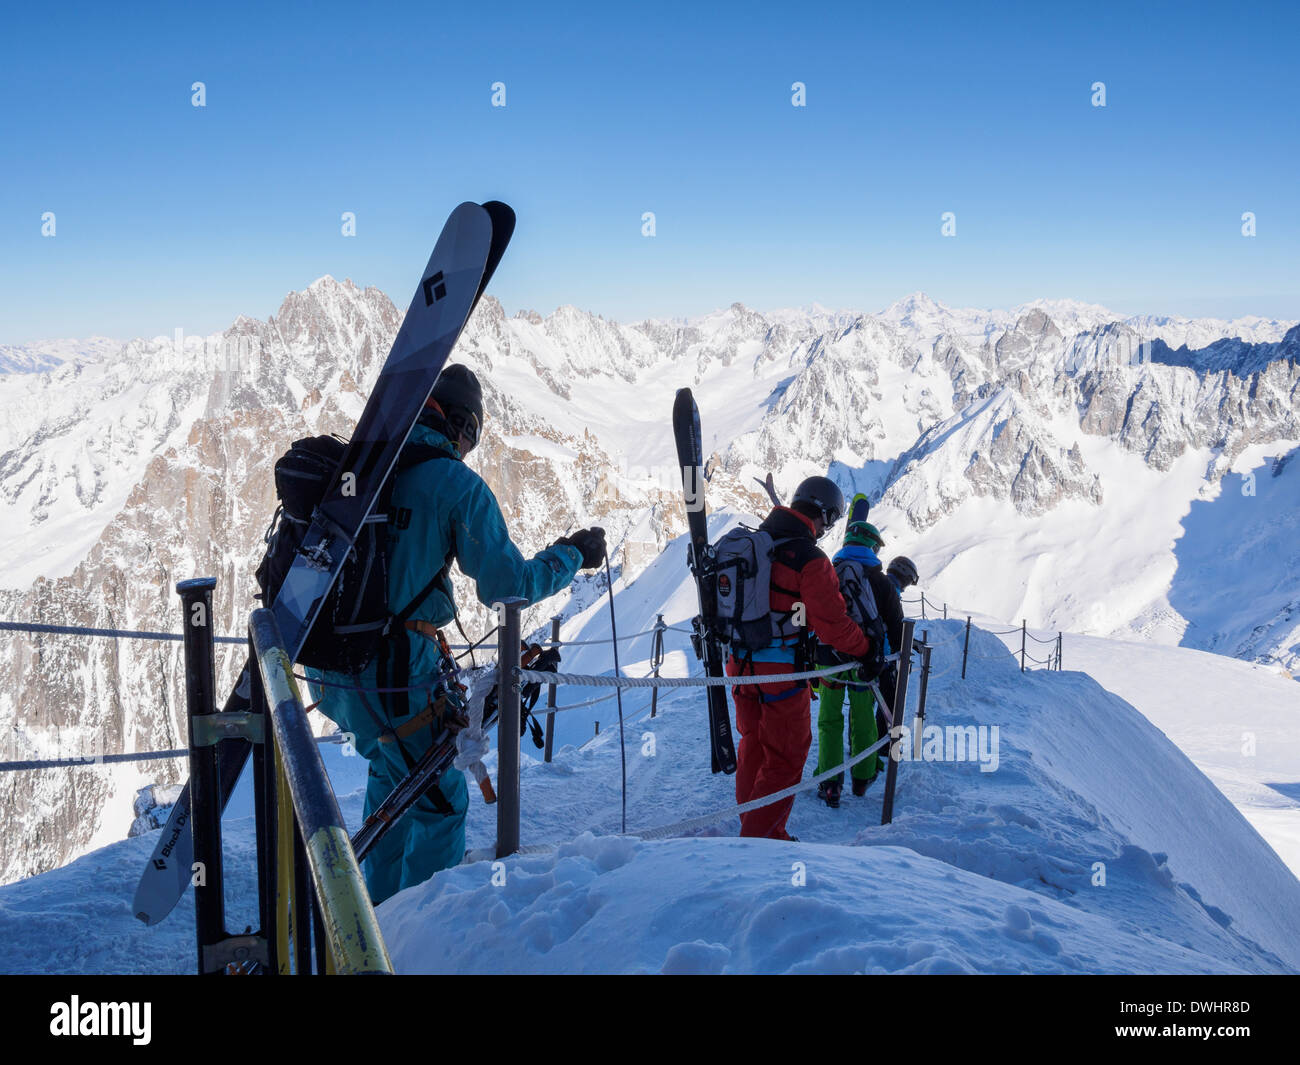 Skiers descending roped path route on arête to ski Vallee Blanche from Aiguille du Midi Chamonix-Mont-Blanc Rhone-Alpes France - Stock Image